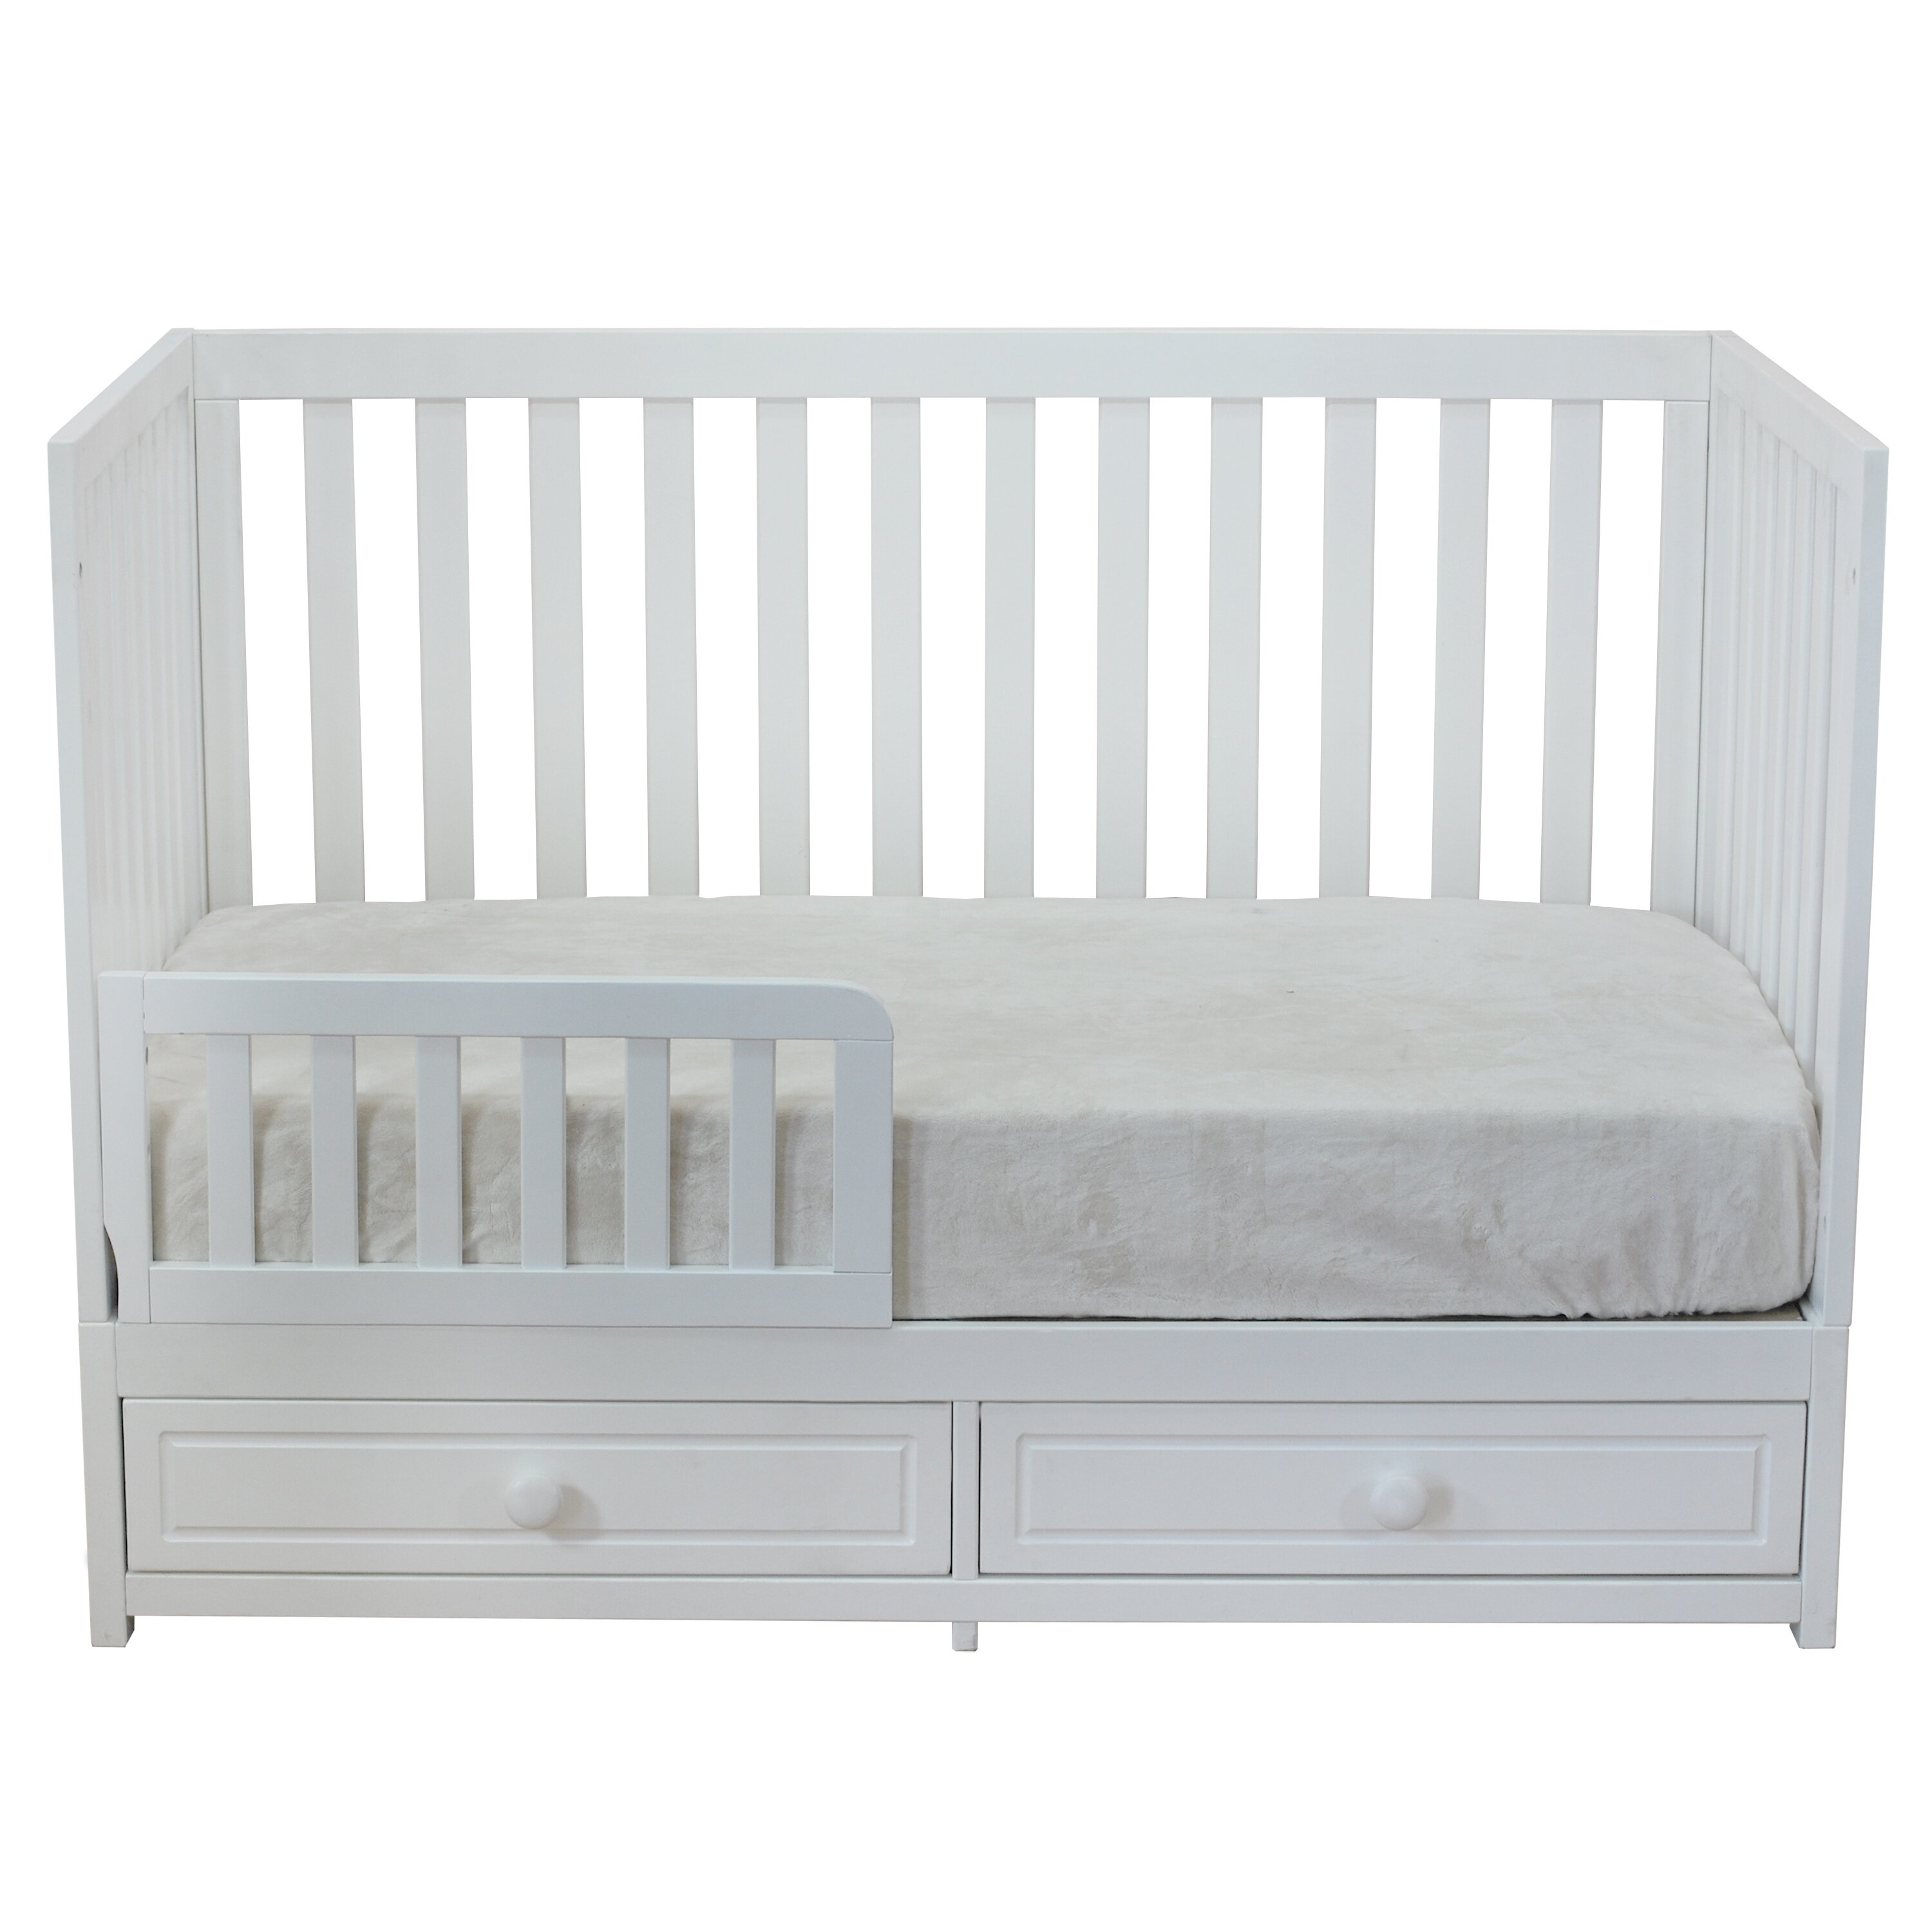 Baby crib mattress dimensions - Afg Baby Furniture Marilyn 3 In 1 Convertible Crib